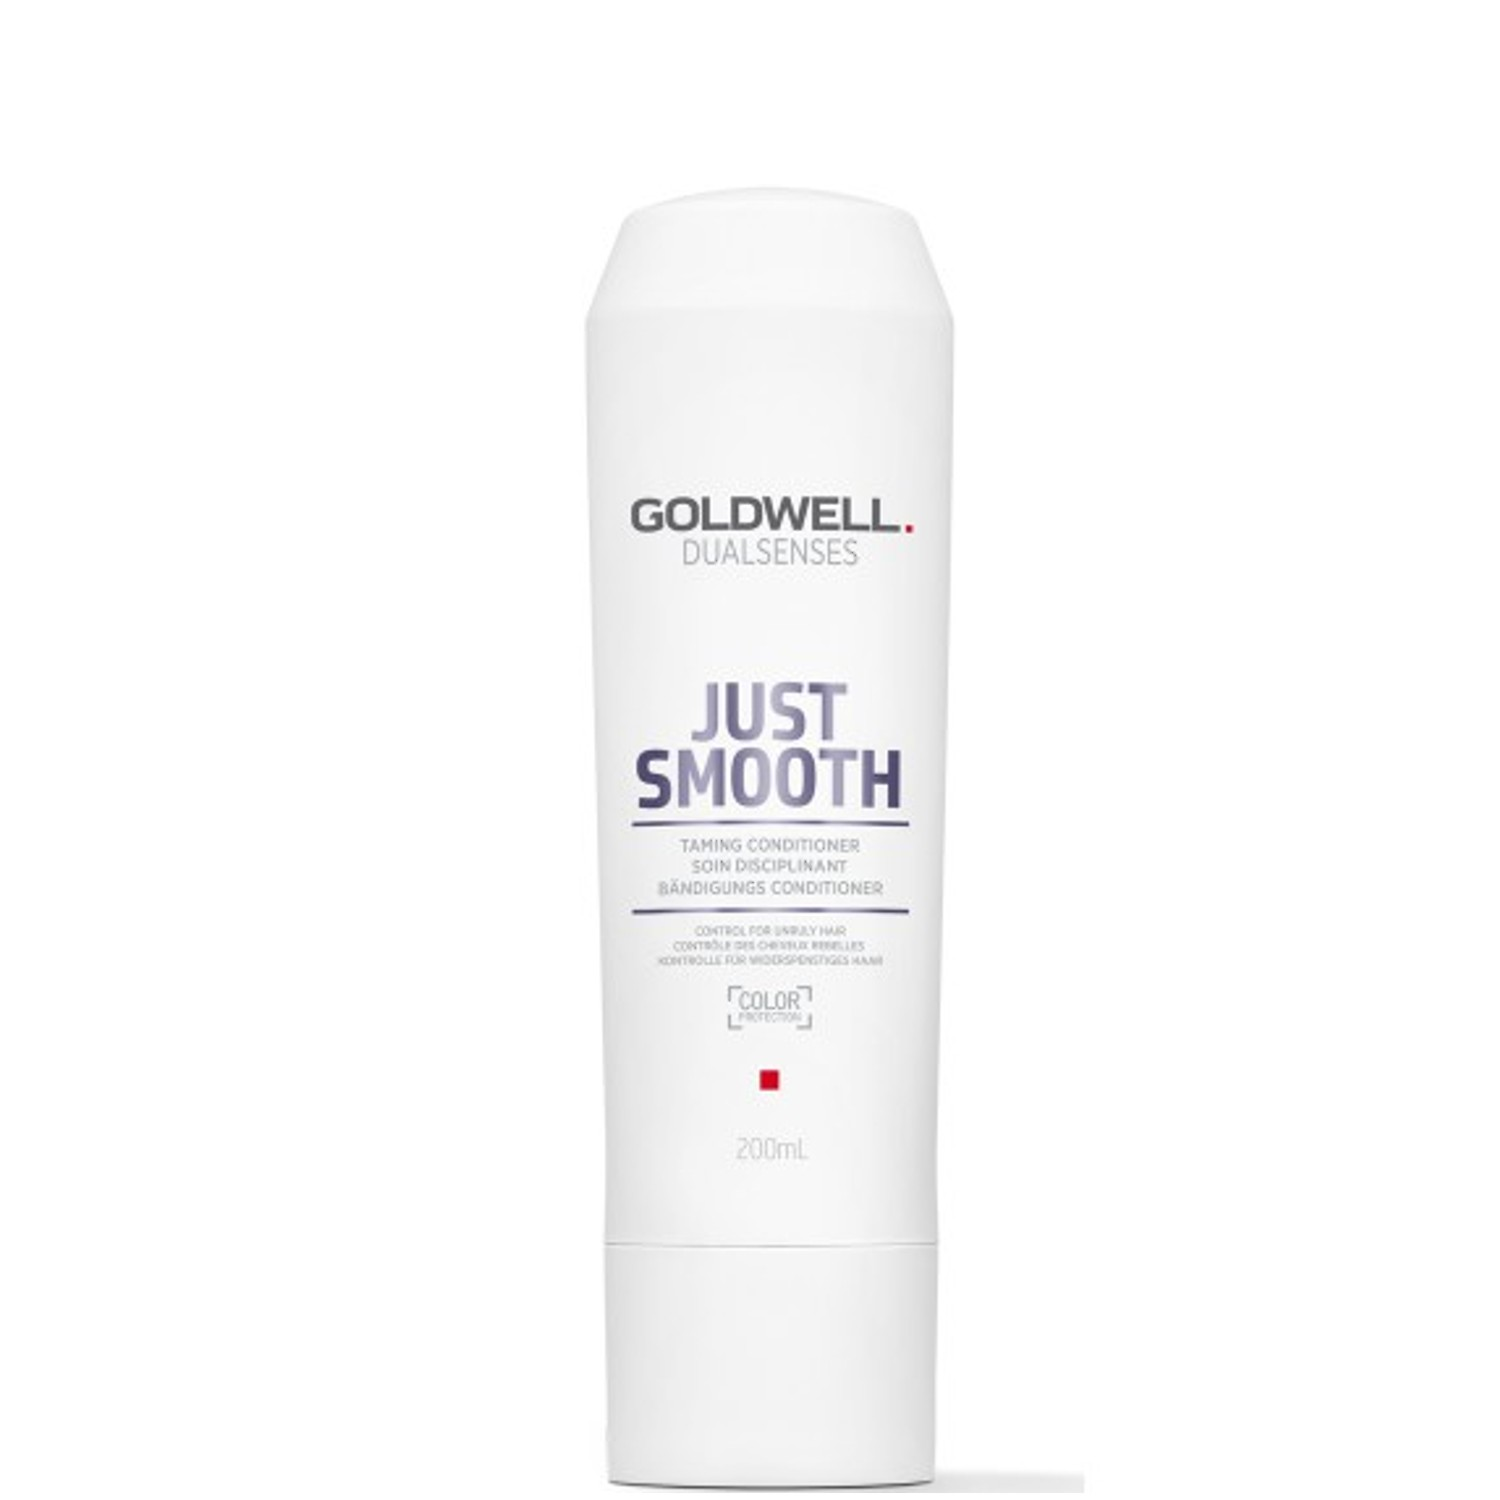 GOLDWELL Dualsenses Just Smooth Taming Conditioner 200 ml